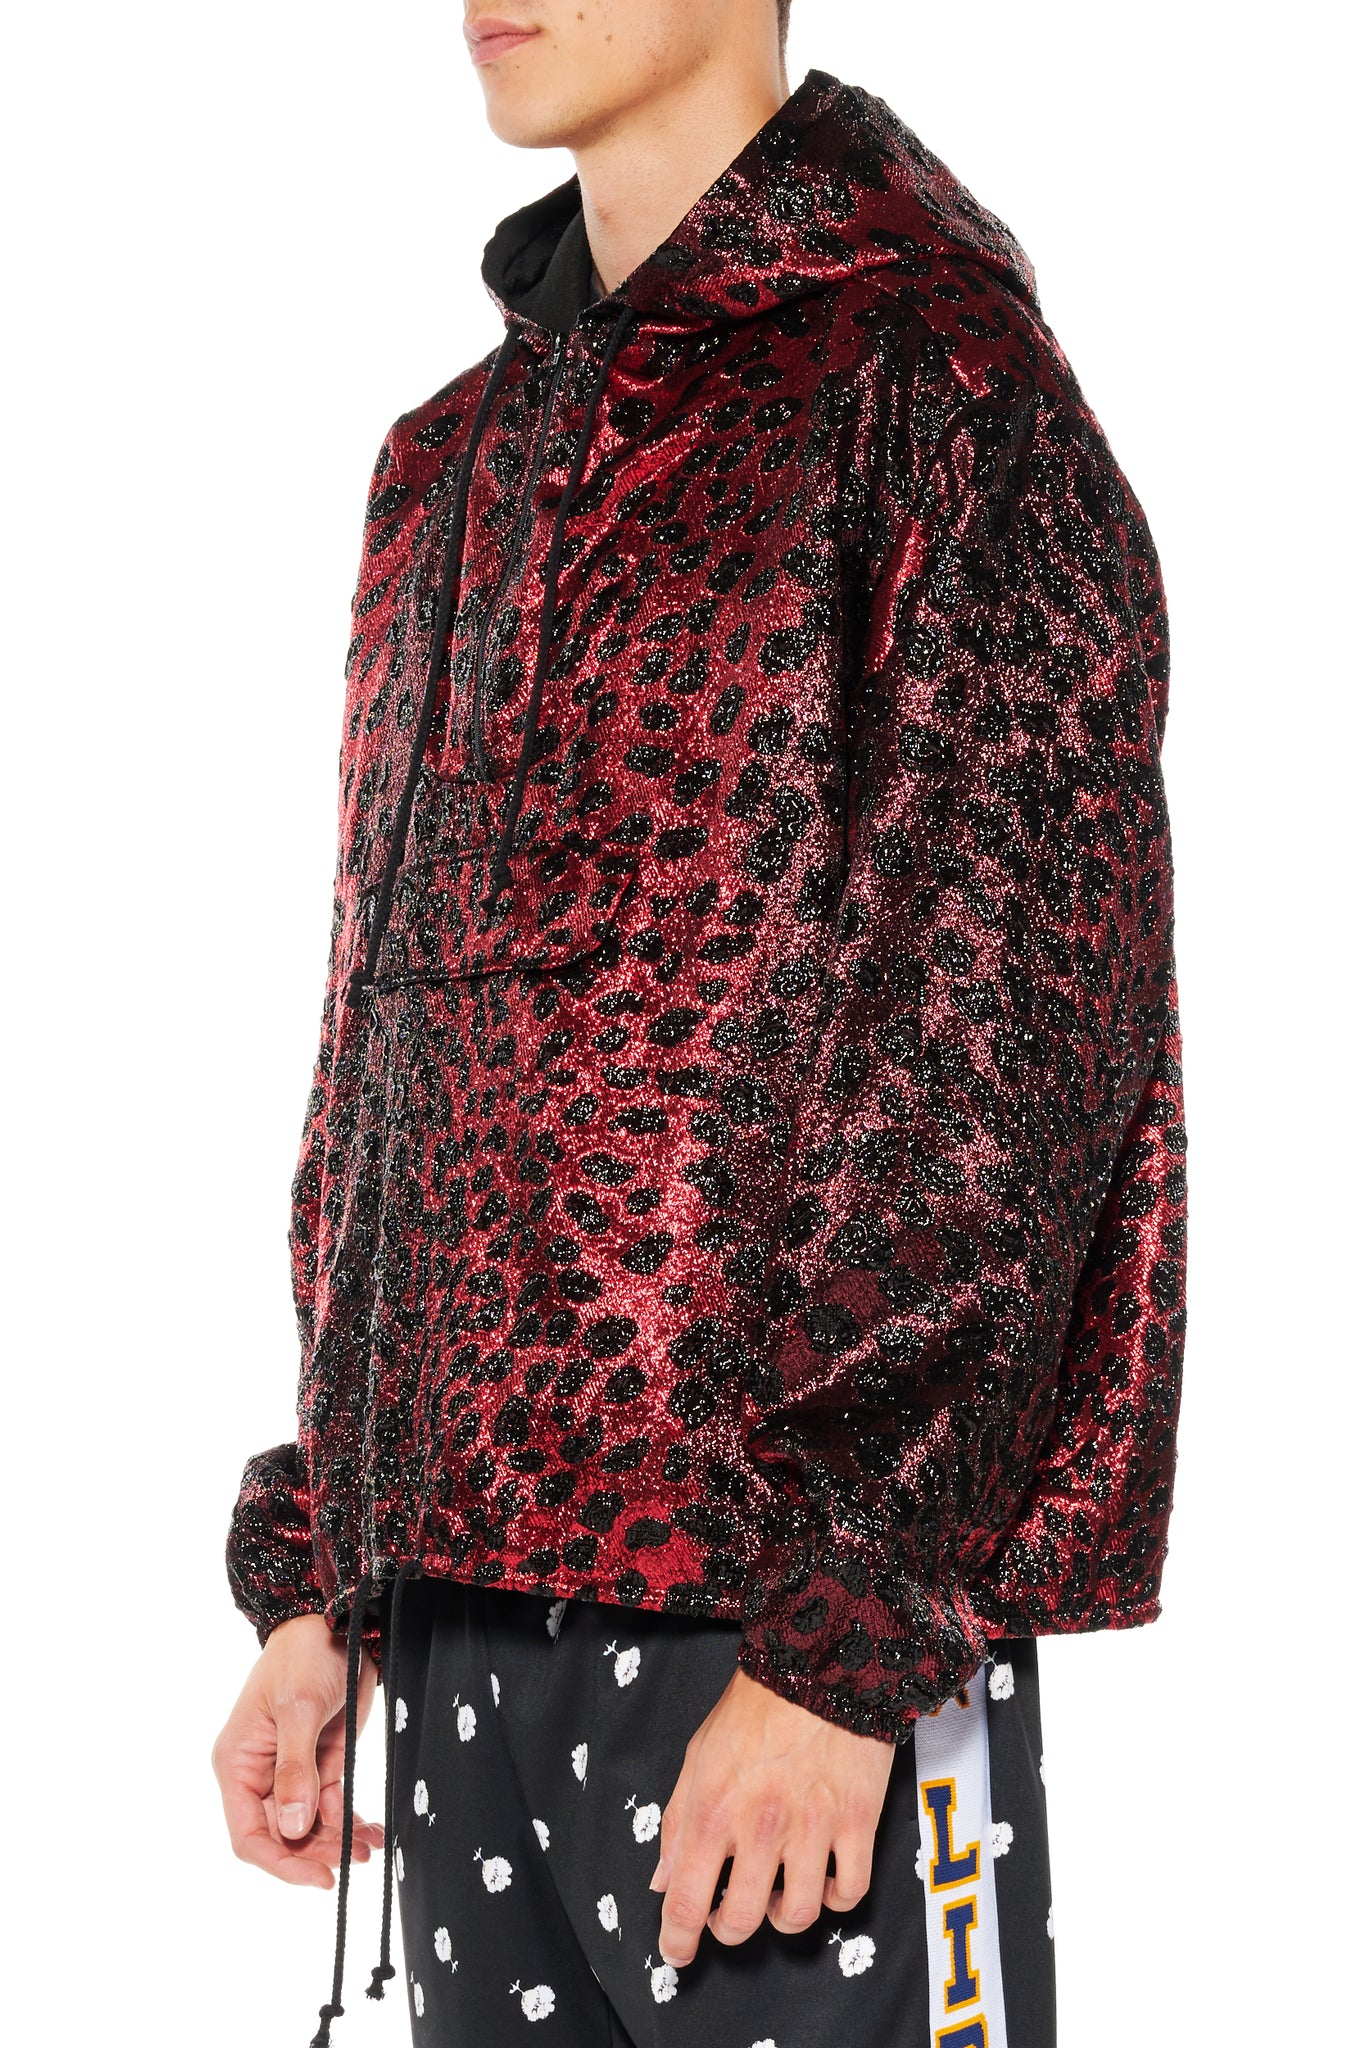 'NIGHT LEOPARD' ANORAK - Web Exclusives - Libertine